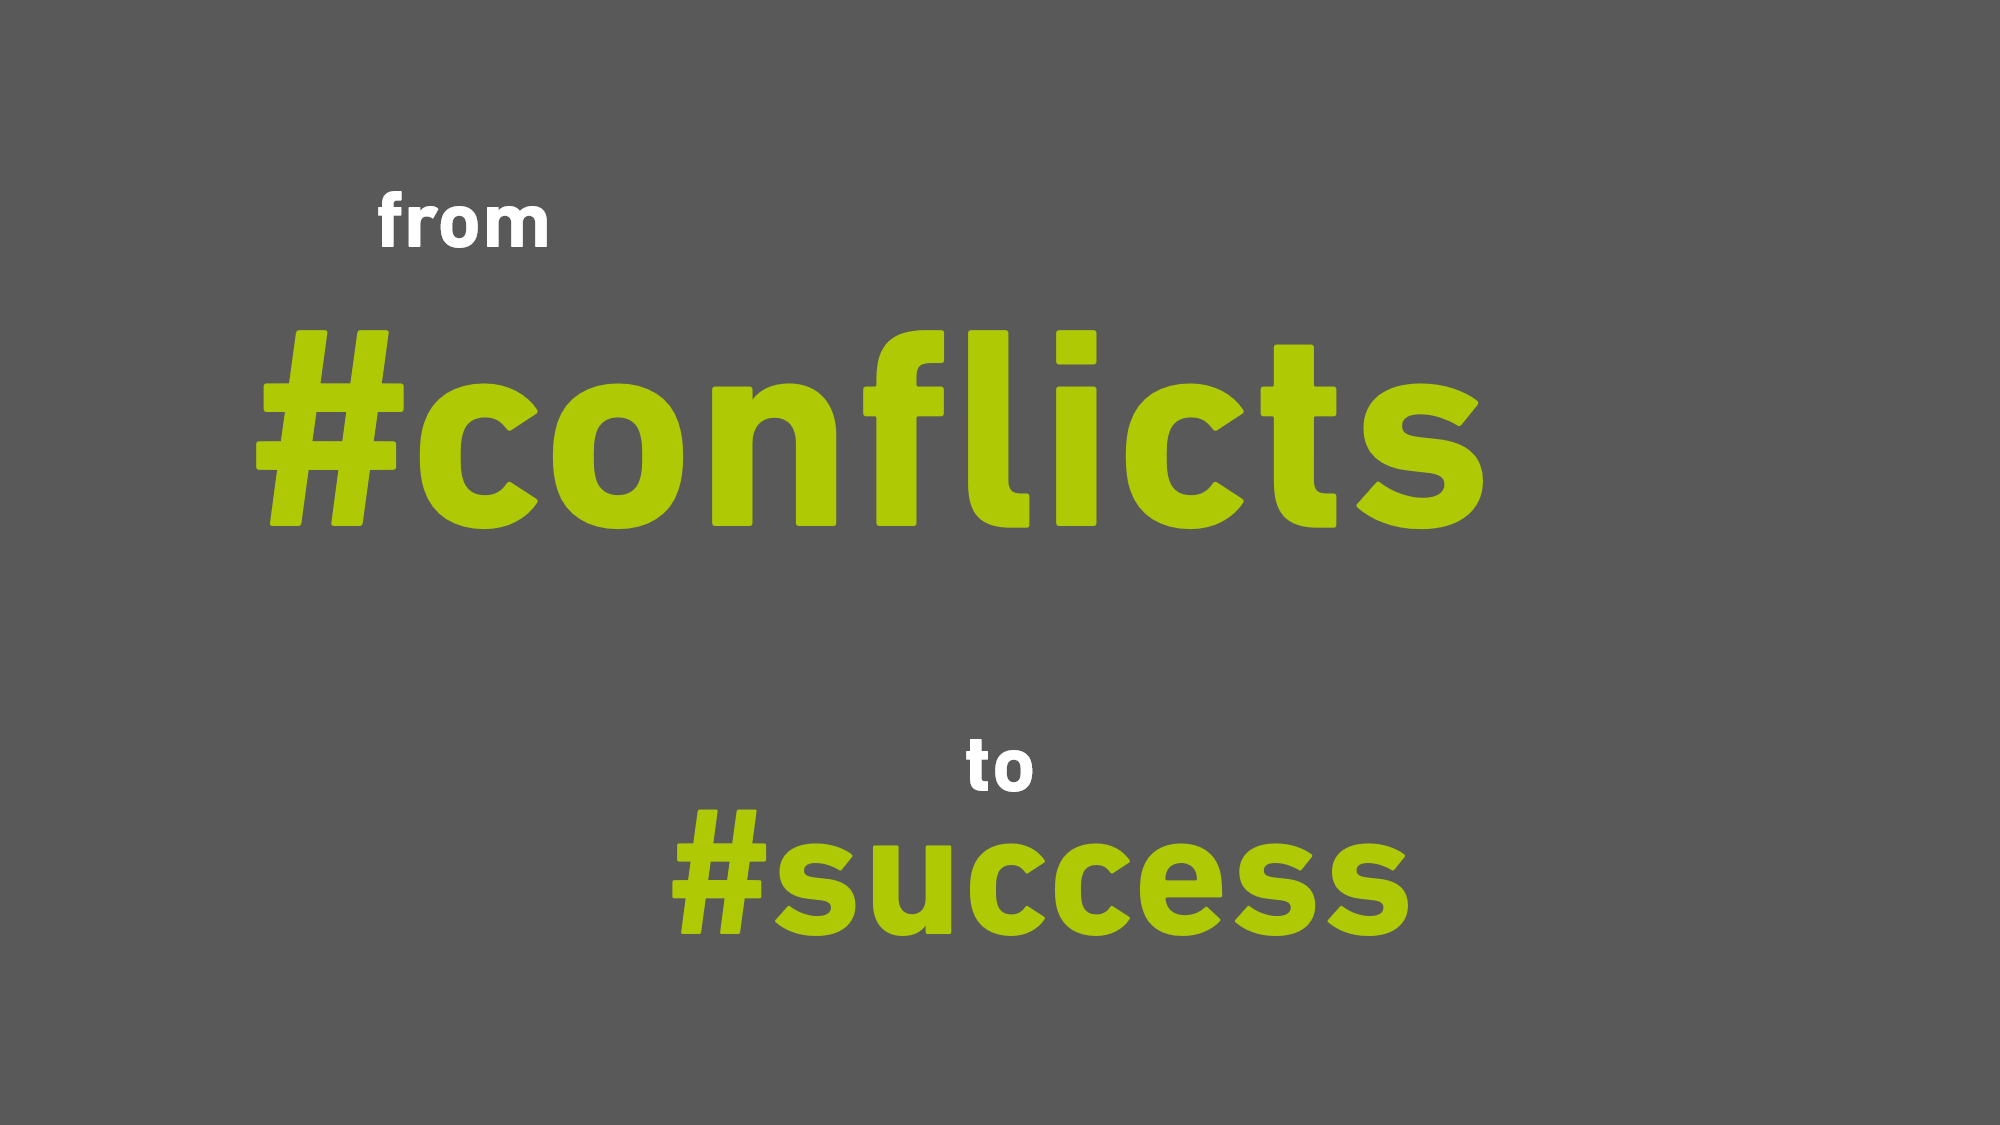 Conflicts are the seeds for success of great teams